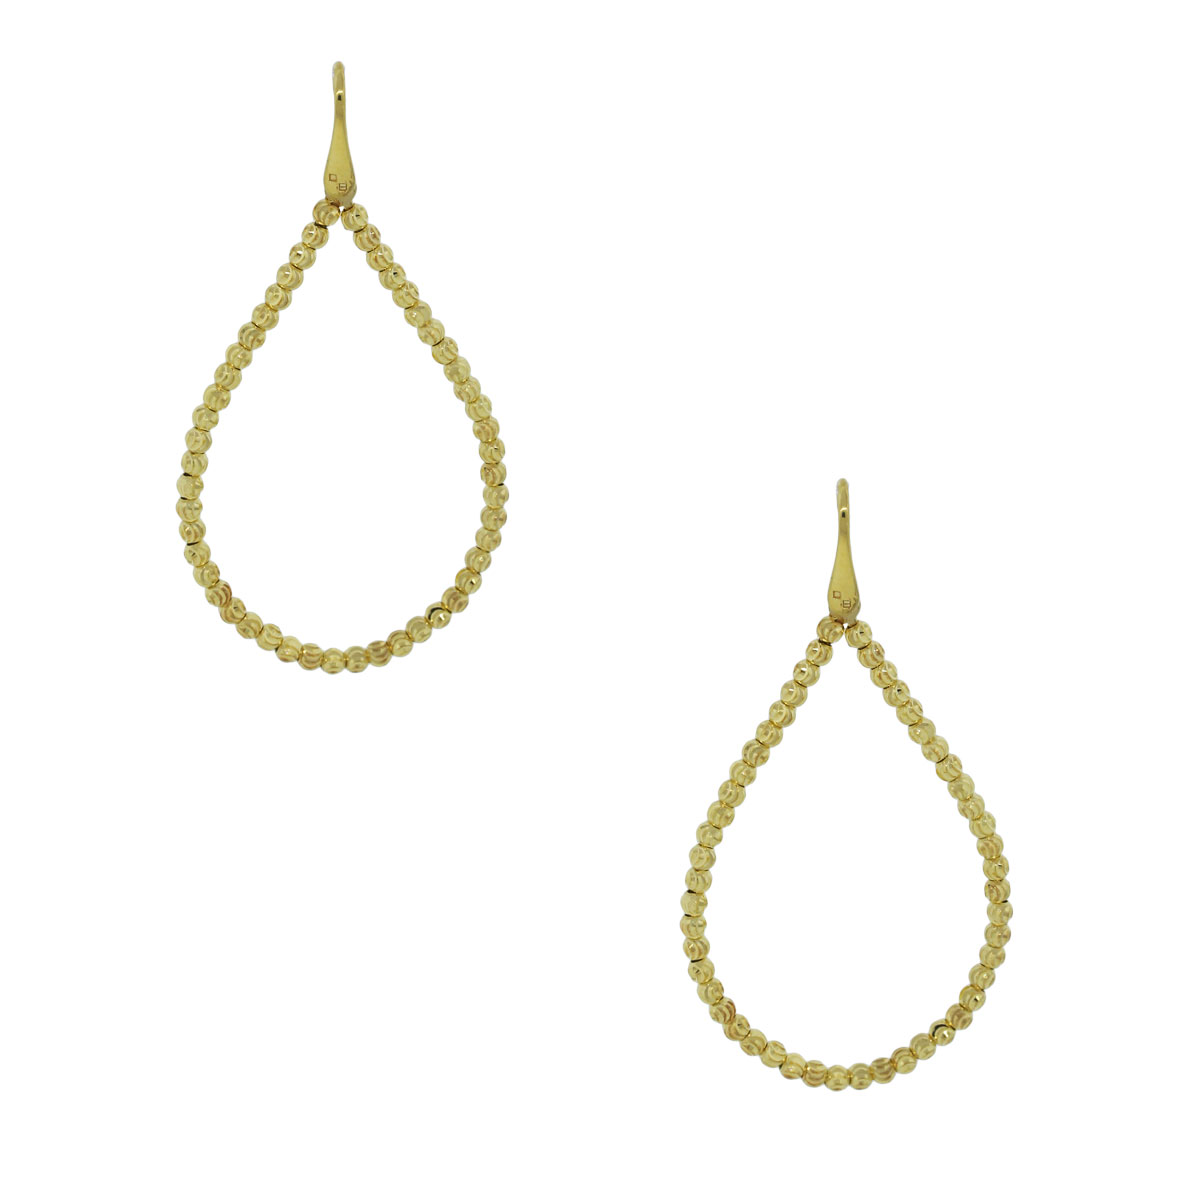 Officina Bernardi SS & 18k Gold Rodium Tear Earrings